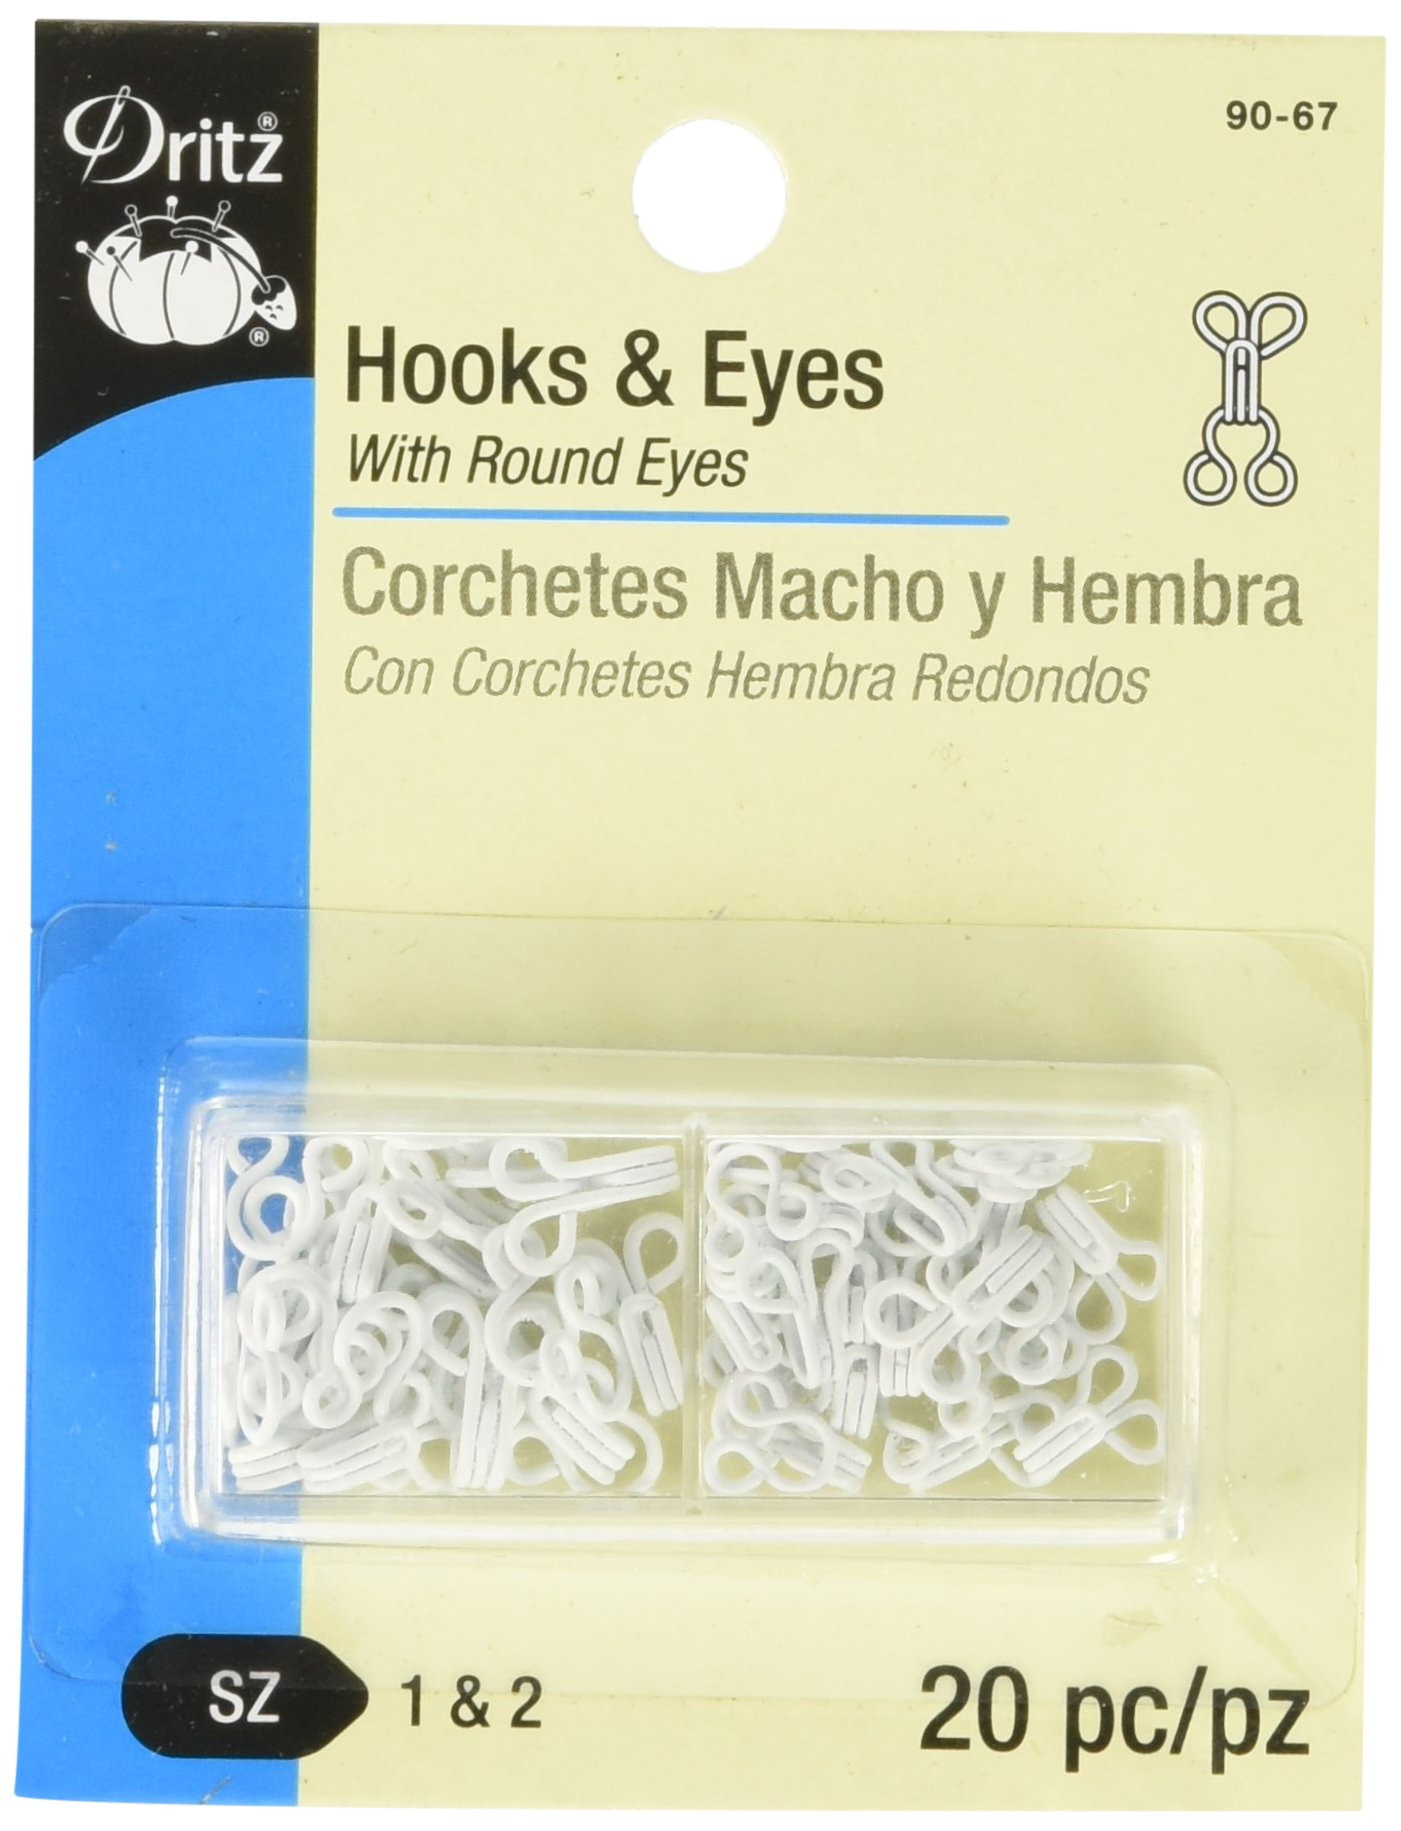 Silver, Black SAVITA 120 Pairs Sewing Hooks and Eyes Closure Claps DIY Craft Accessories for Bra Clothing Trousers Skirt Trousers,3 Sizes